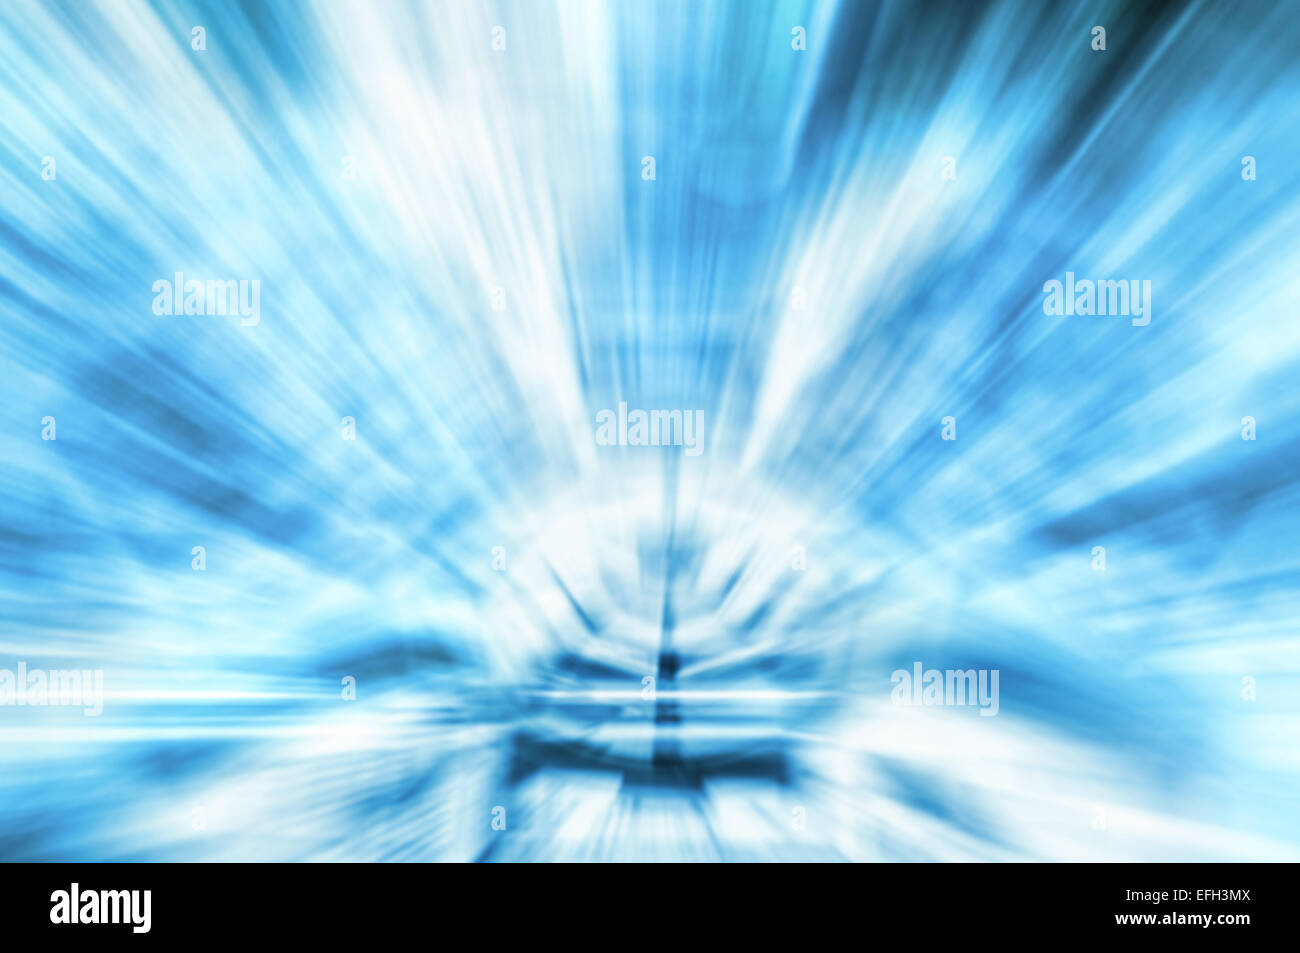 Abstract motion blurred high tech background. - Stock Image